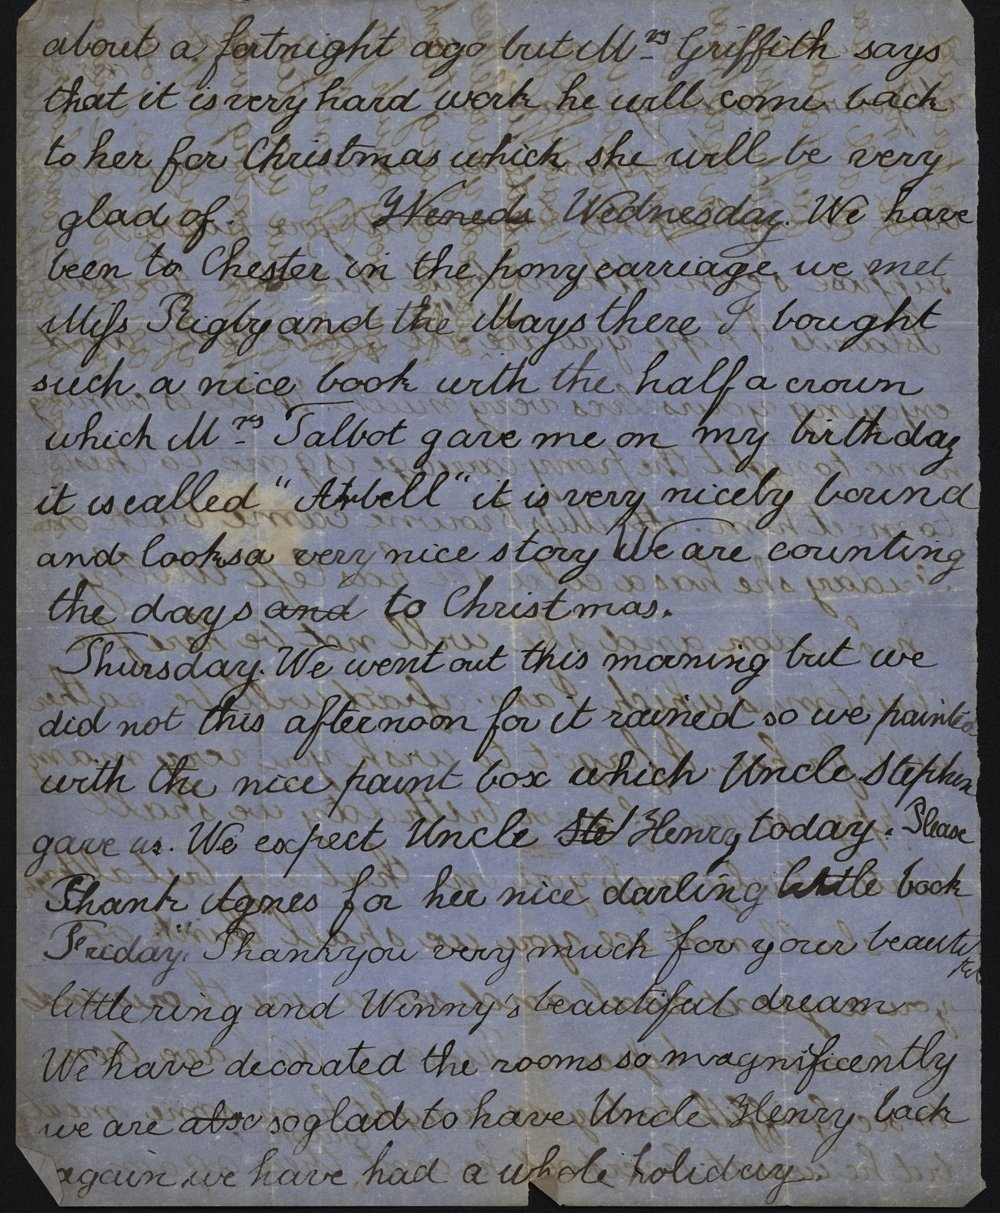 Mary Gladstone to Catherine Gladstone, 19 and 20 December 1858. GG 759. All manuscript images used with permission. The transcription of the letter appears in full at the end of the post..